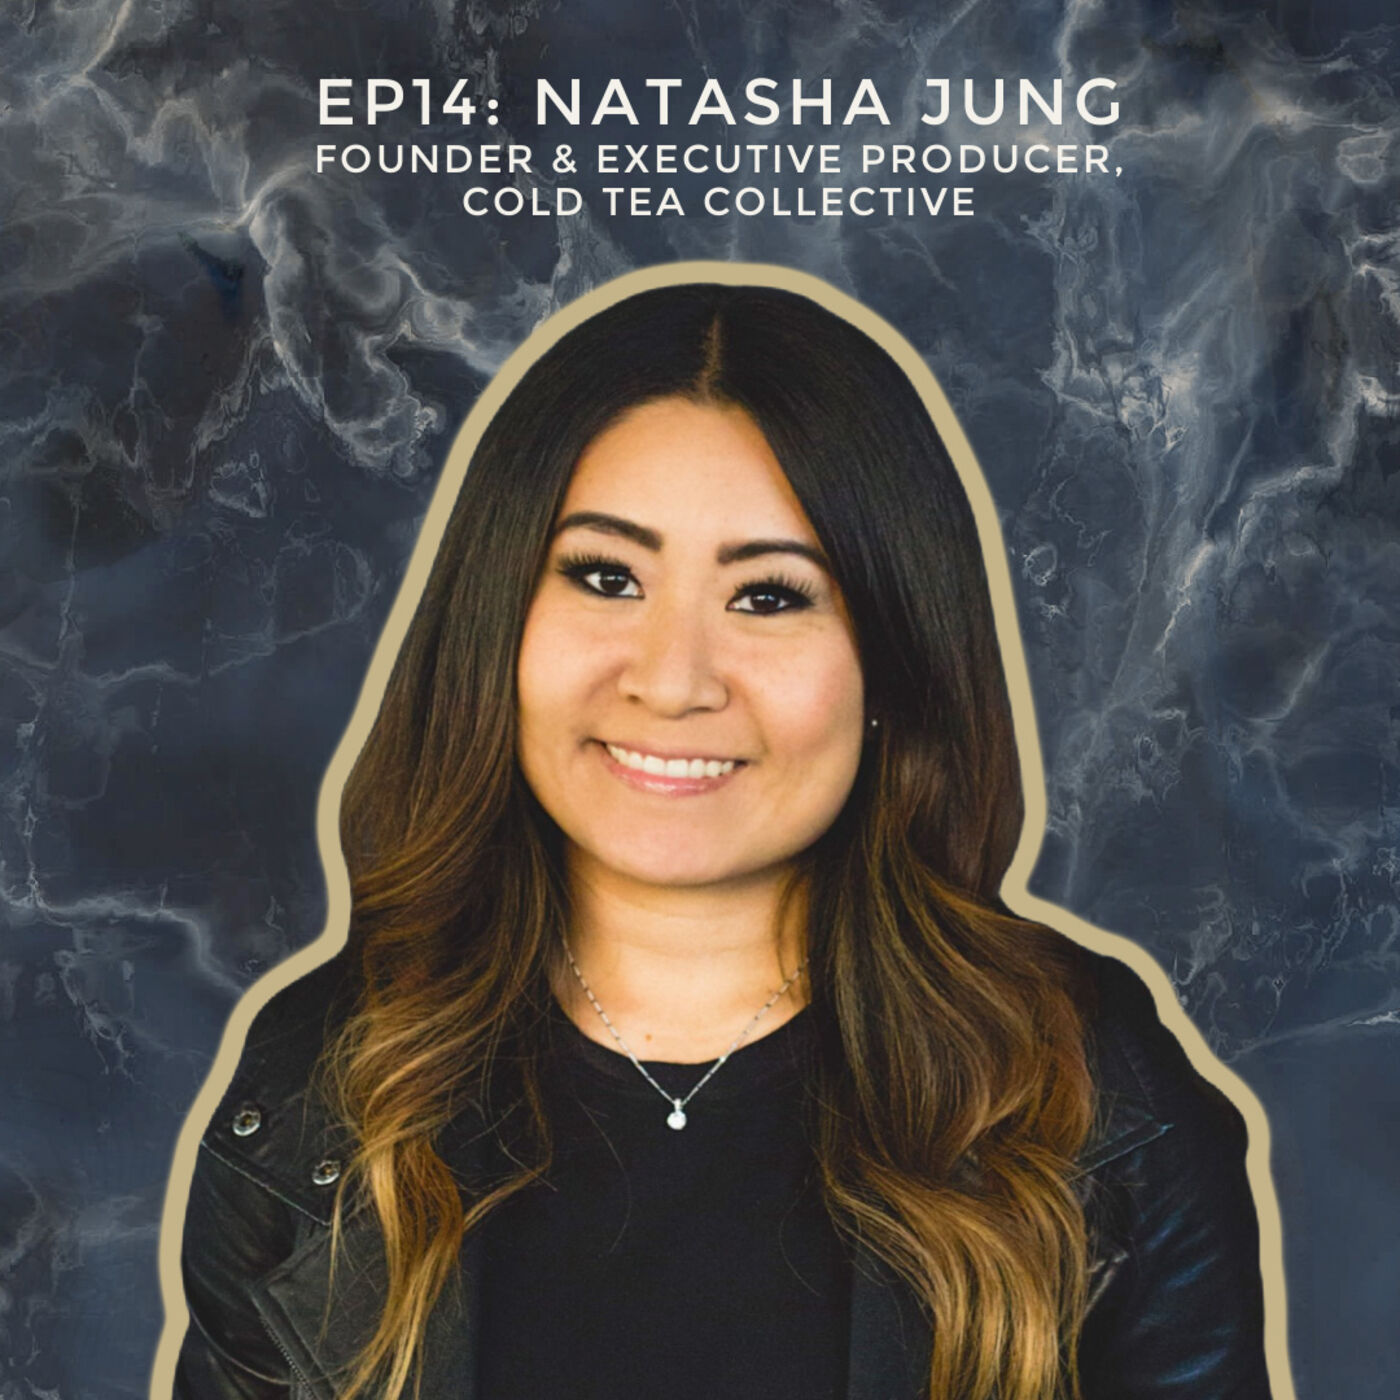 Building a Platform for Asian Millennial Stories with Natasha Jung, Founder & Executive Producer of Cold Tea Collective